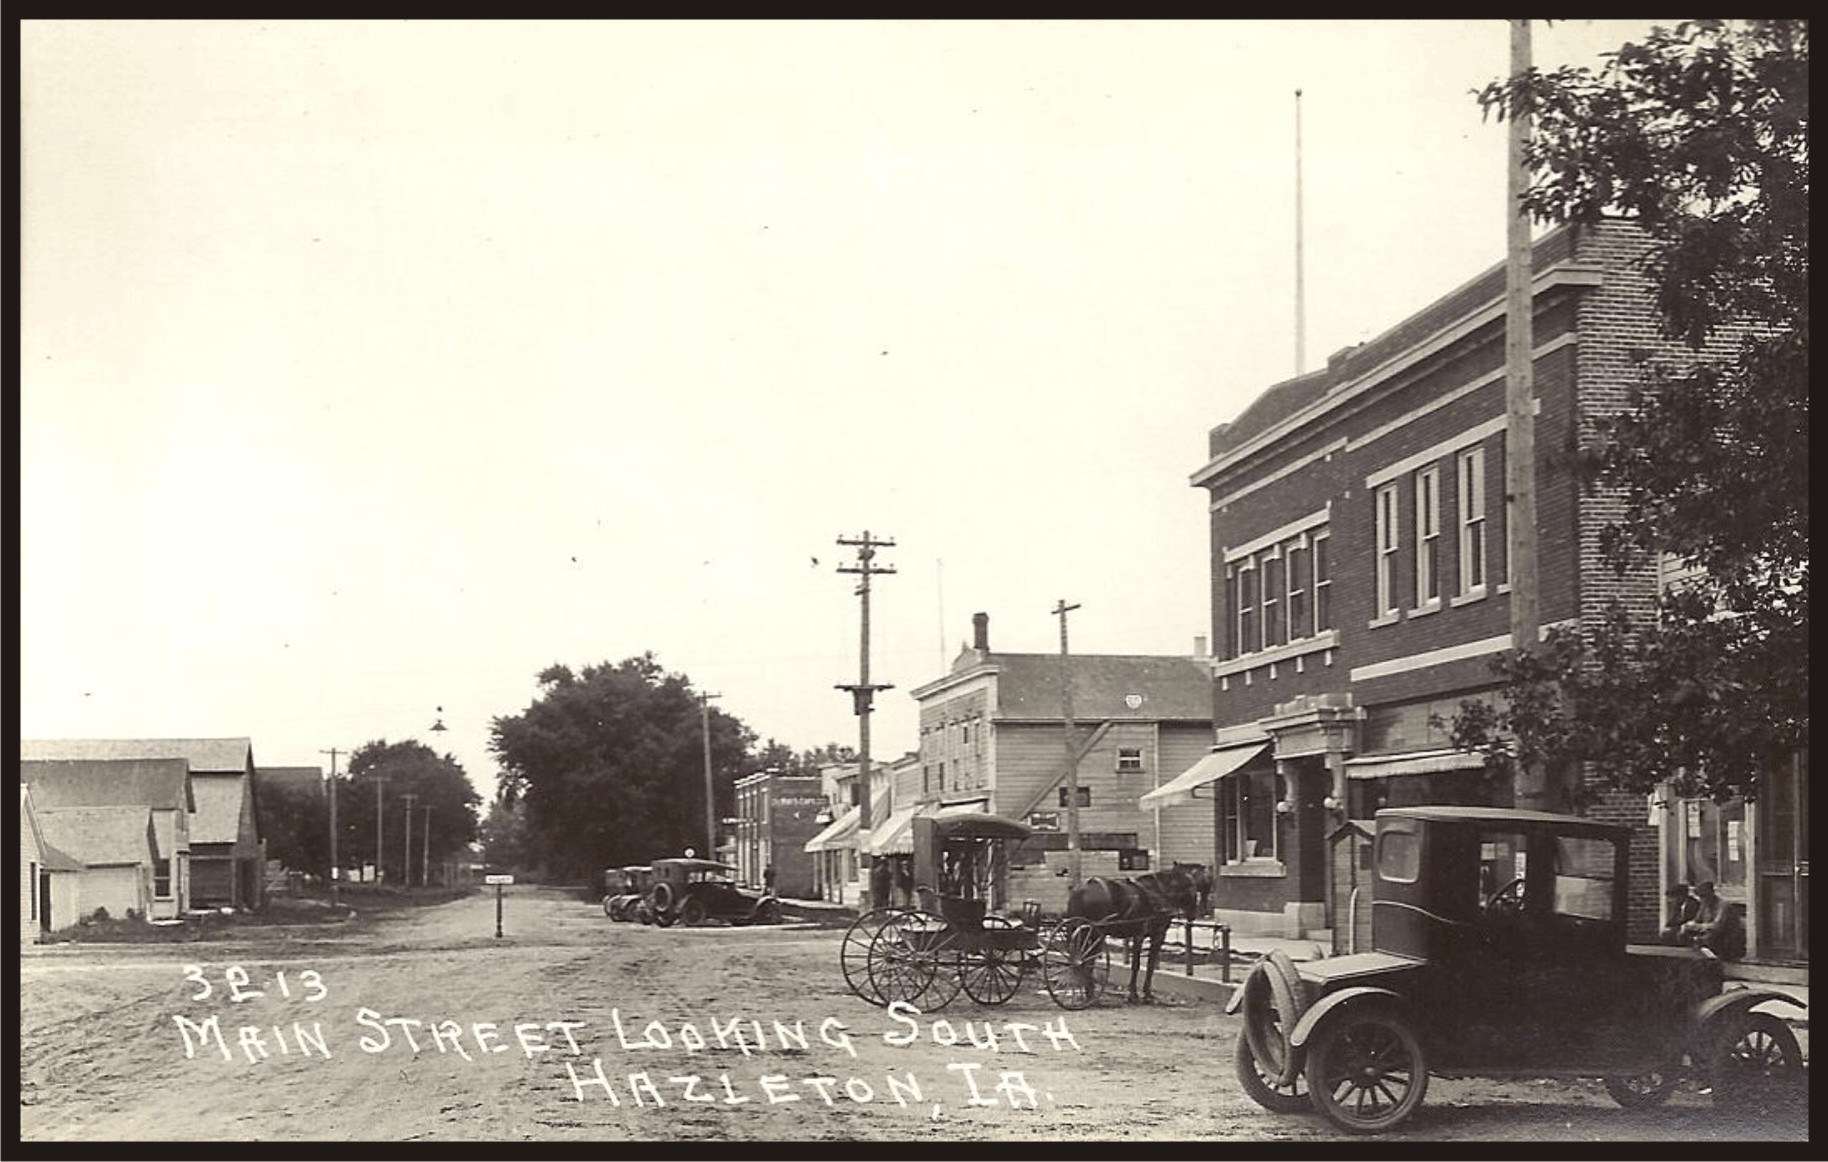 Old Main Street looking South - Hazleton, Iowa